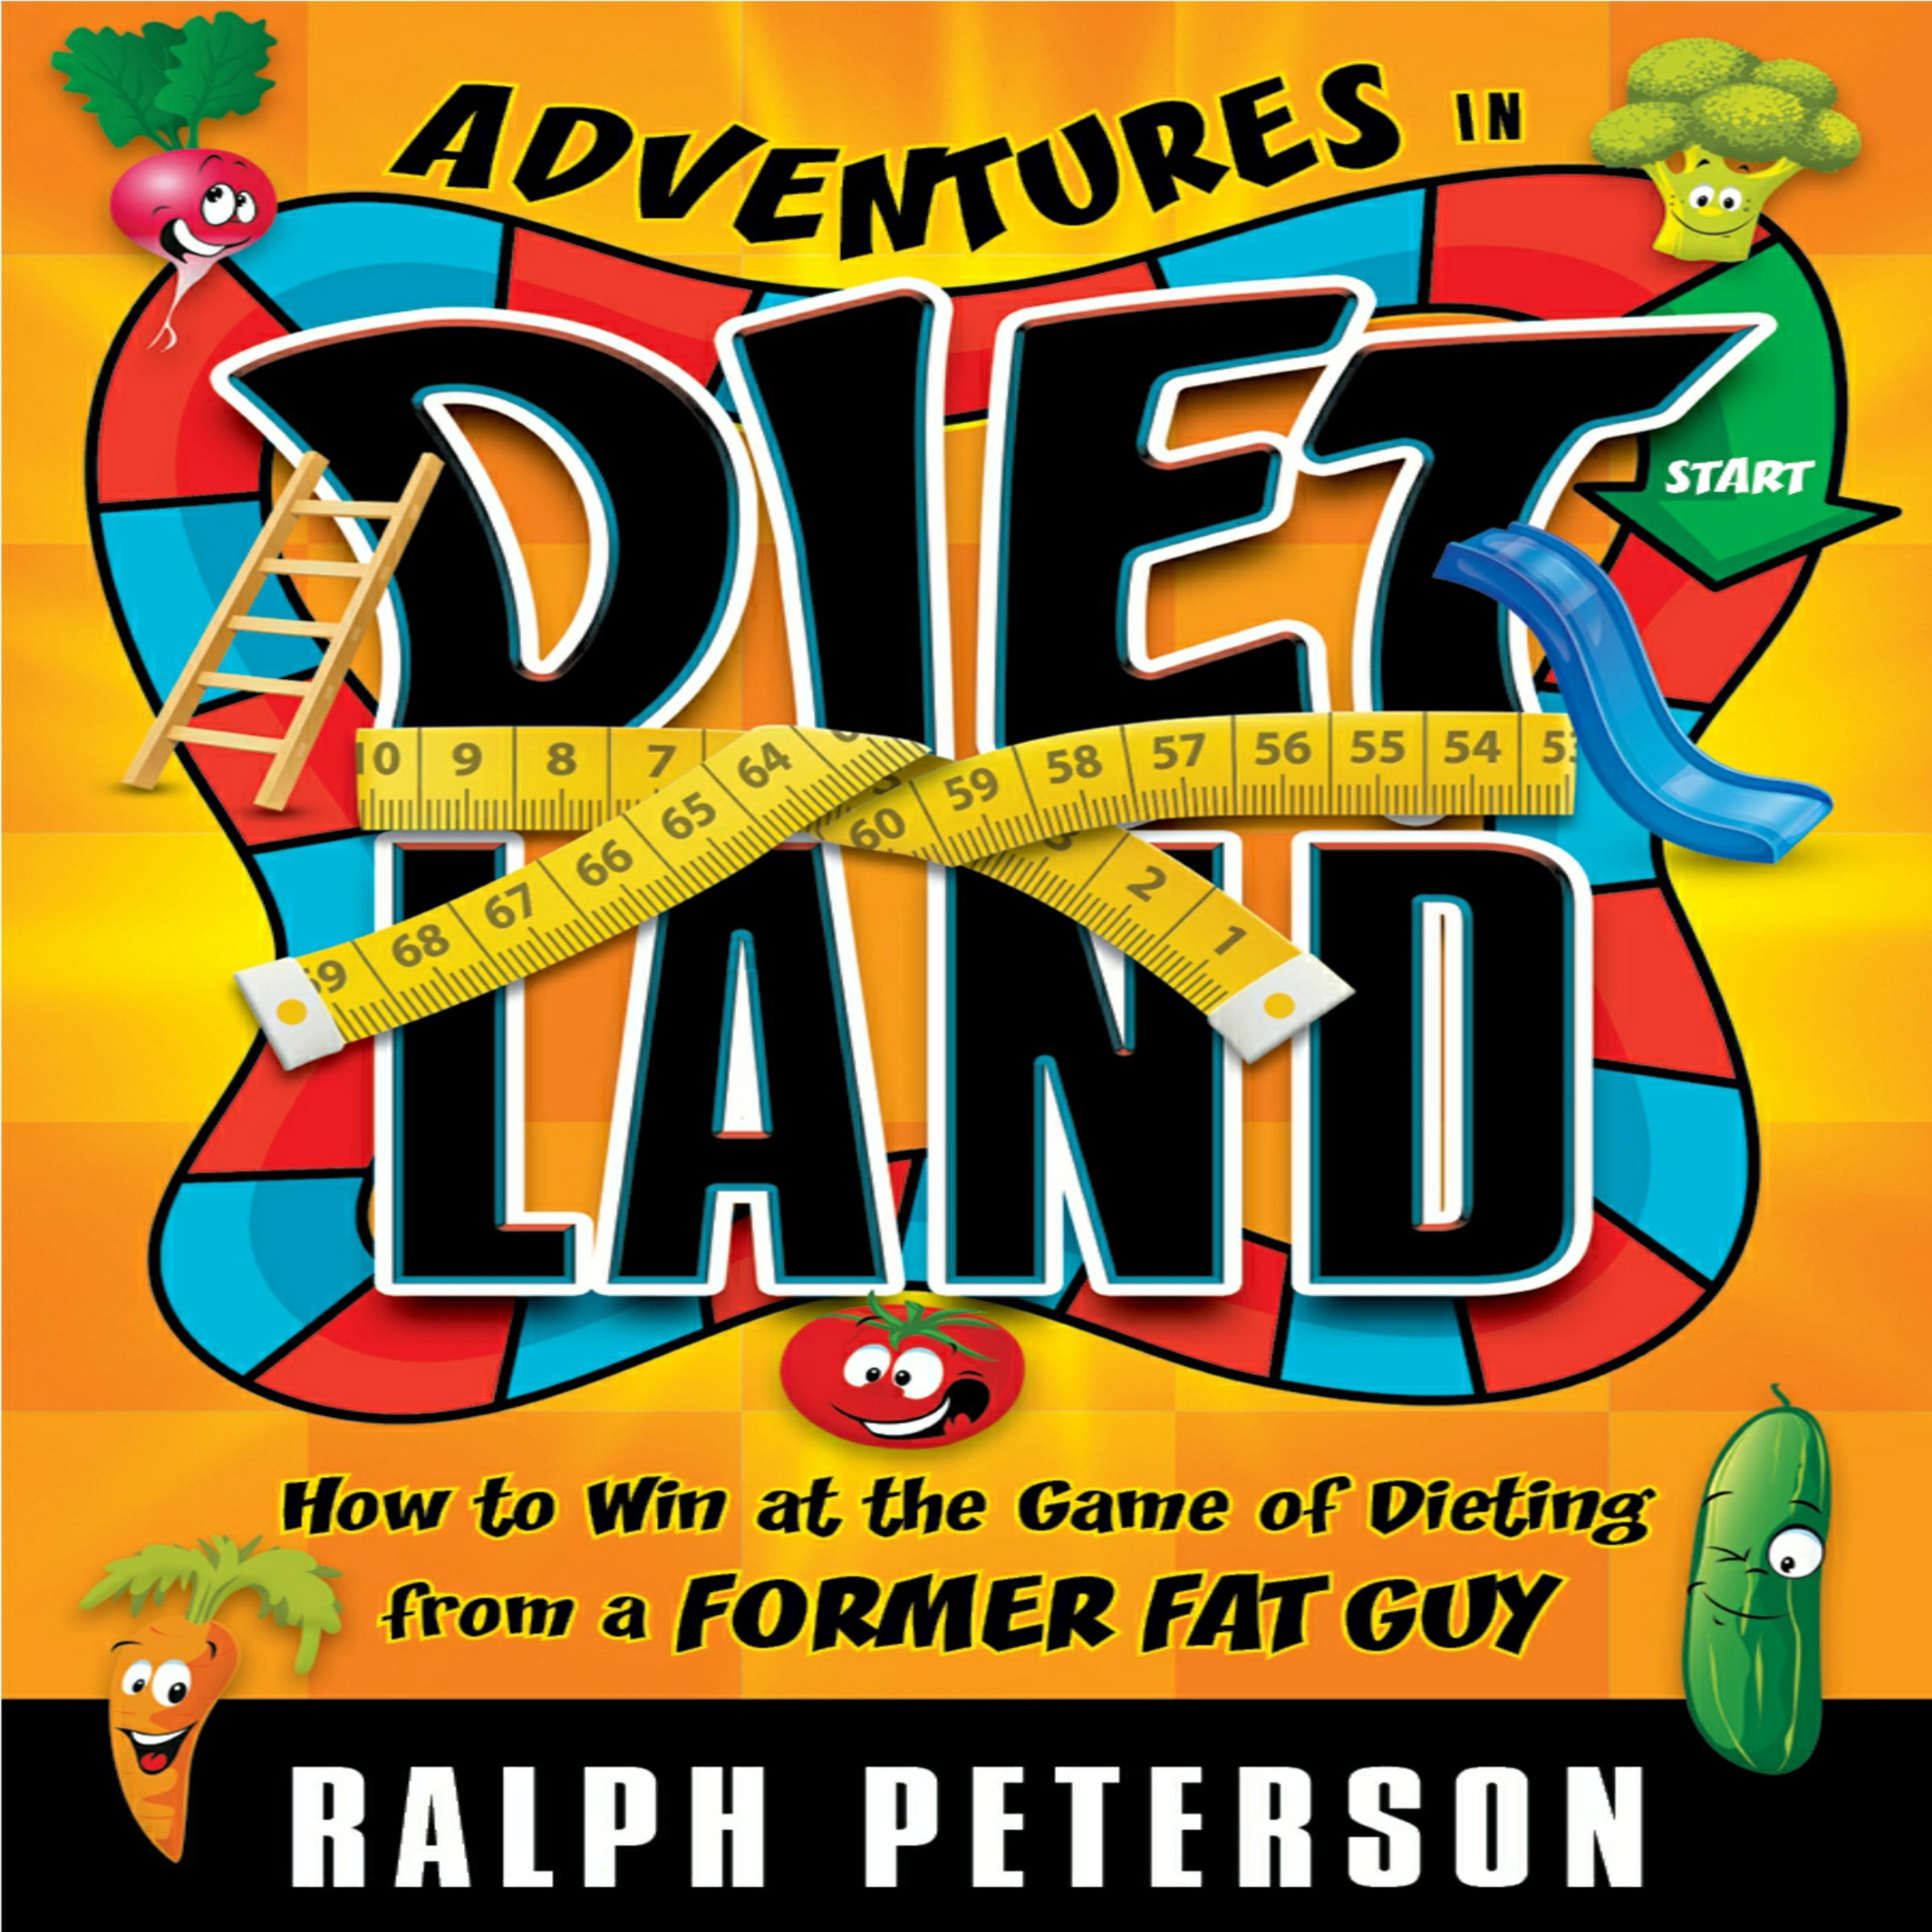 Image OfAdventures In Dietland: How To Win At The Game Of Dieting From A Former Fat Guy